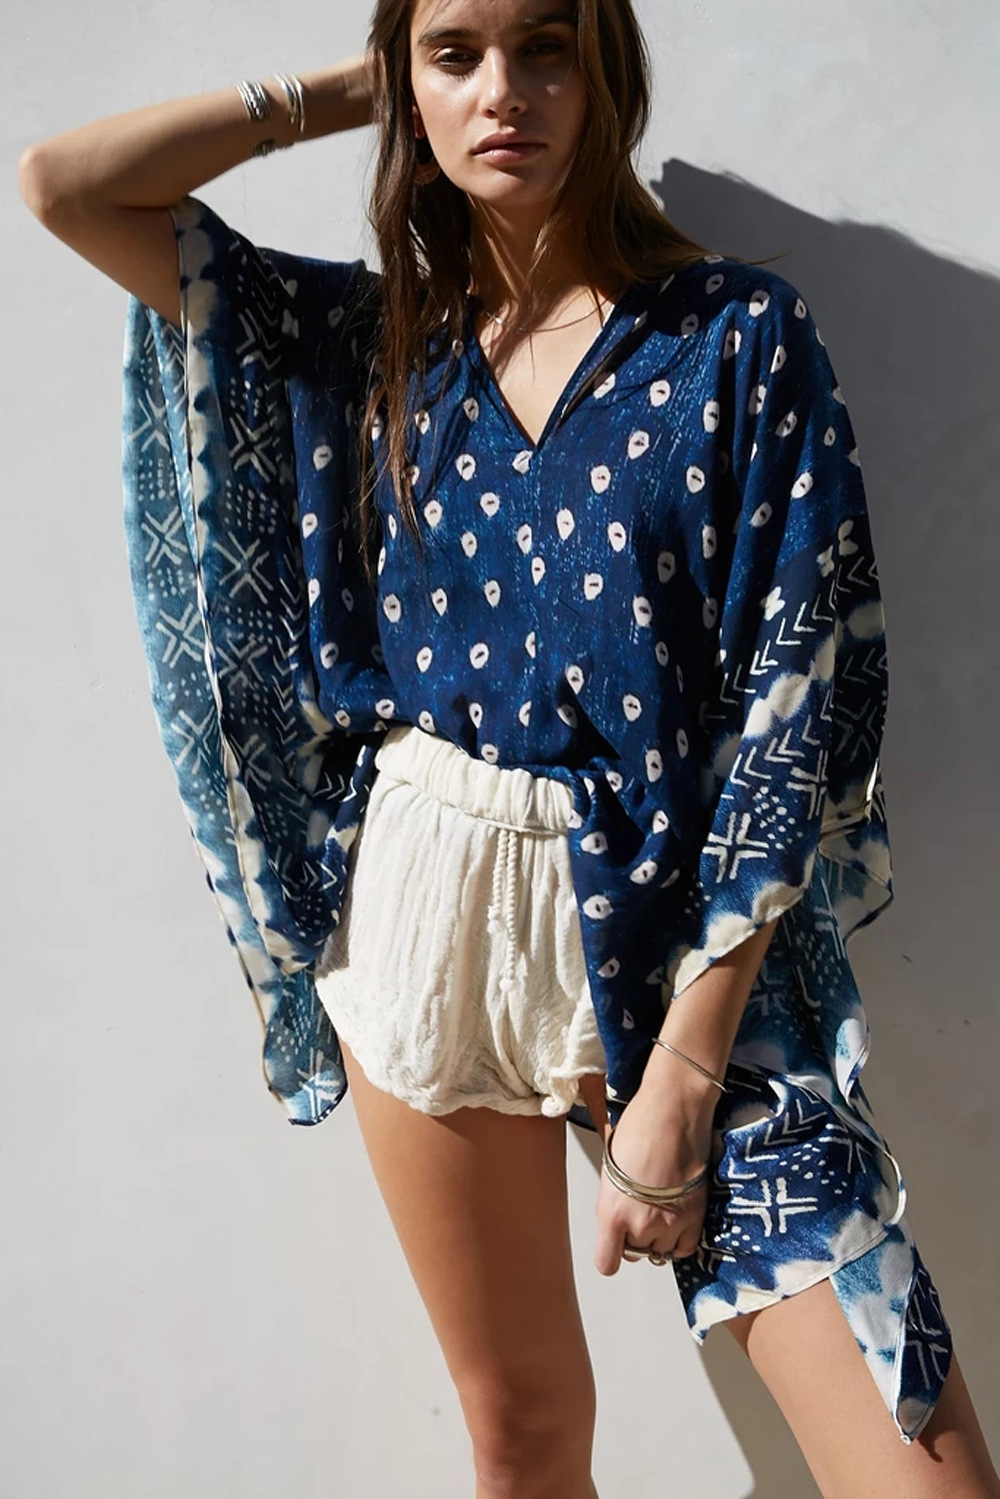 Bat Sleeve Long Sleeve Stitching Loose V-neck Top Printed Women s Sun Protection Outer Blouse NSDF1514